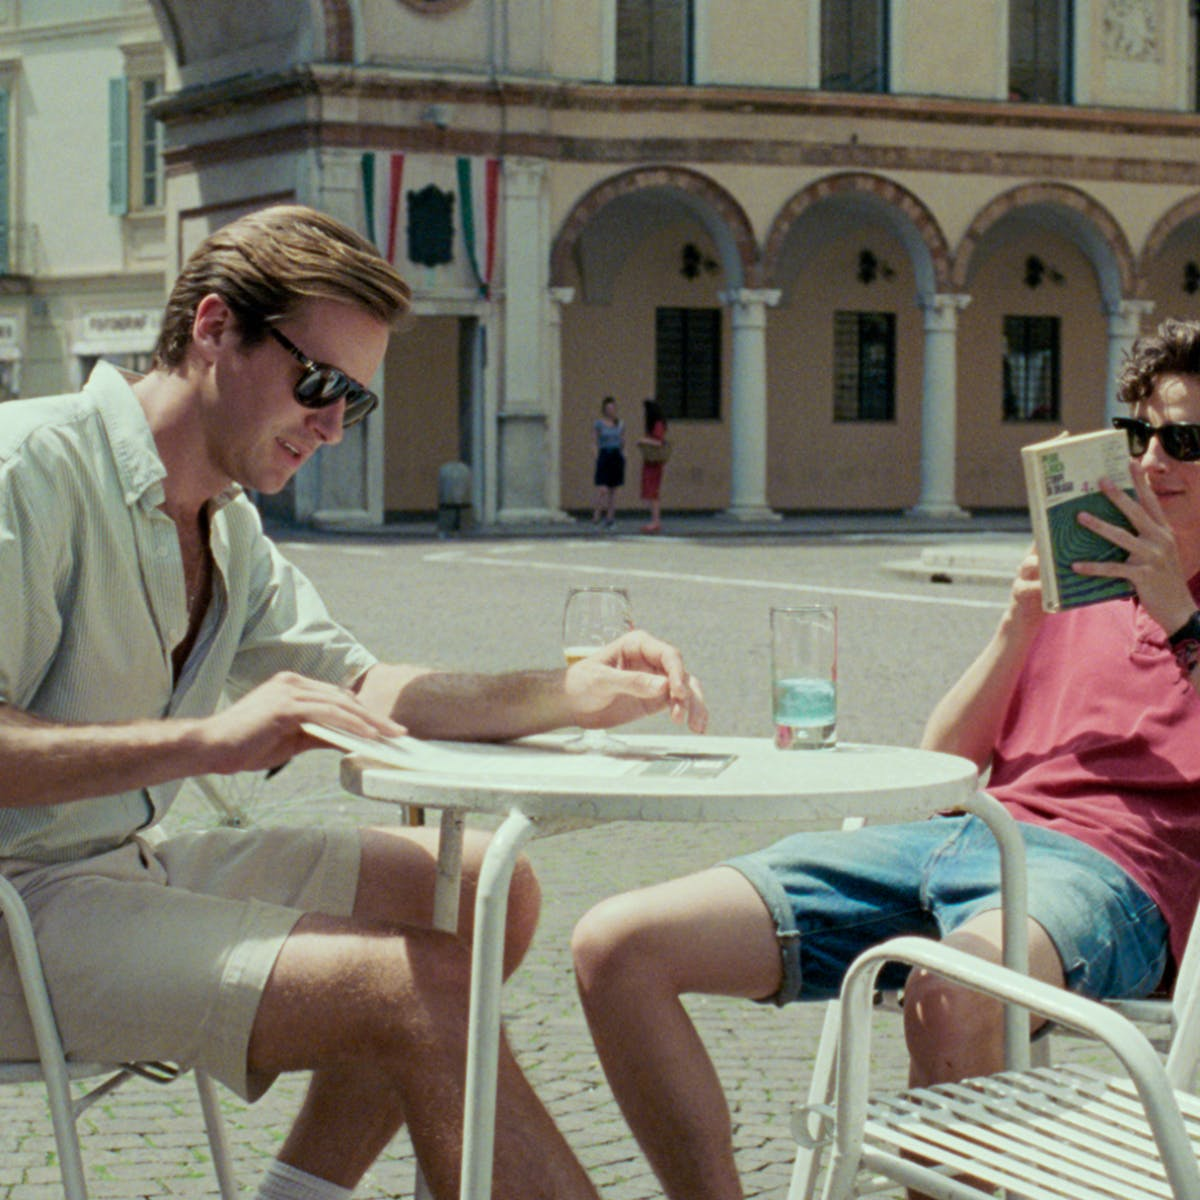 Call Me By Your Name – and why love and friendship were better